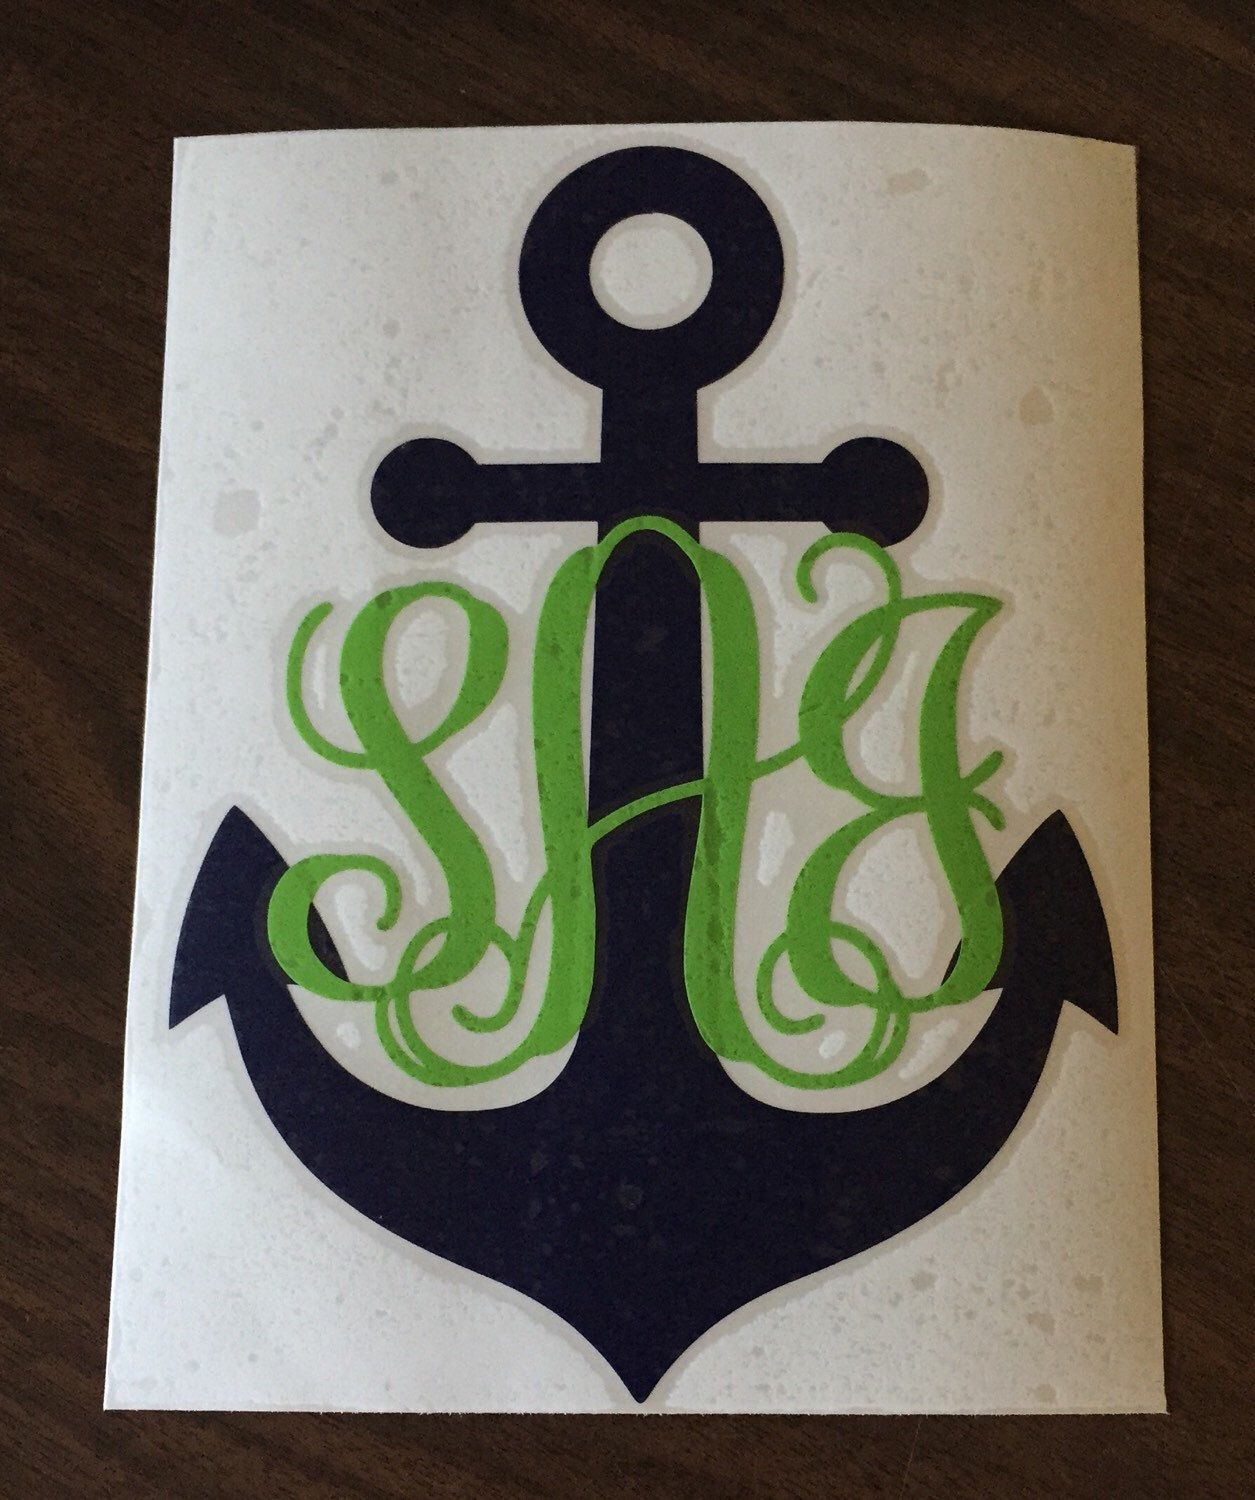 Inch Anchor Monogram Car Decal By ZoLynnDesignsEtc On Etsy - Monogram car decal anchor